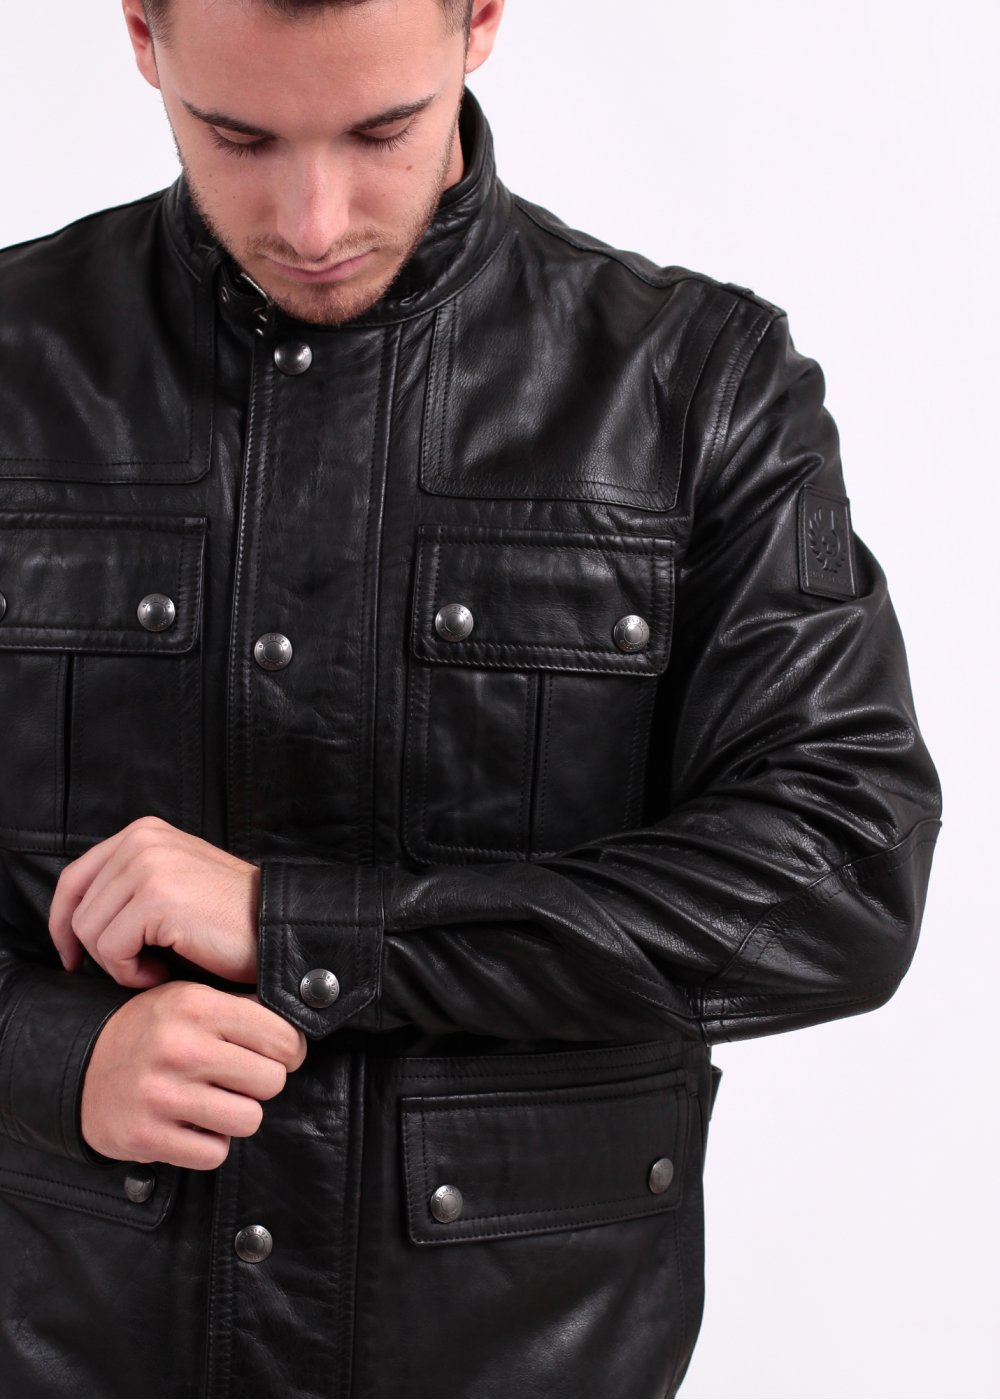 Black friday leather jacket sale – Modern fashion jacket photo blog